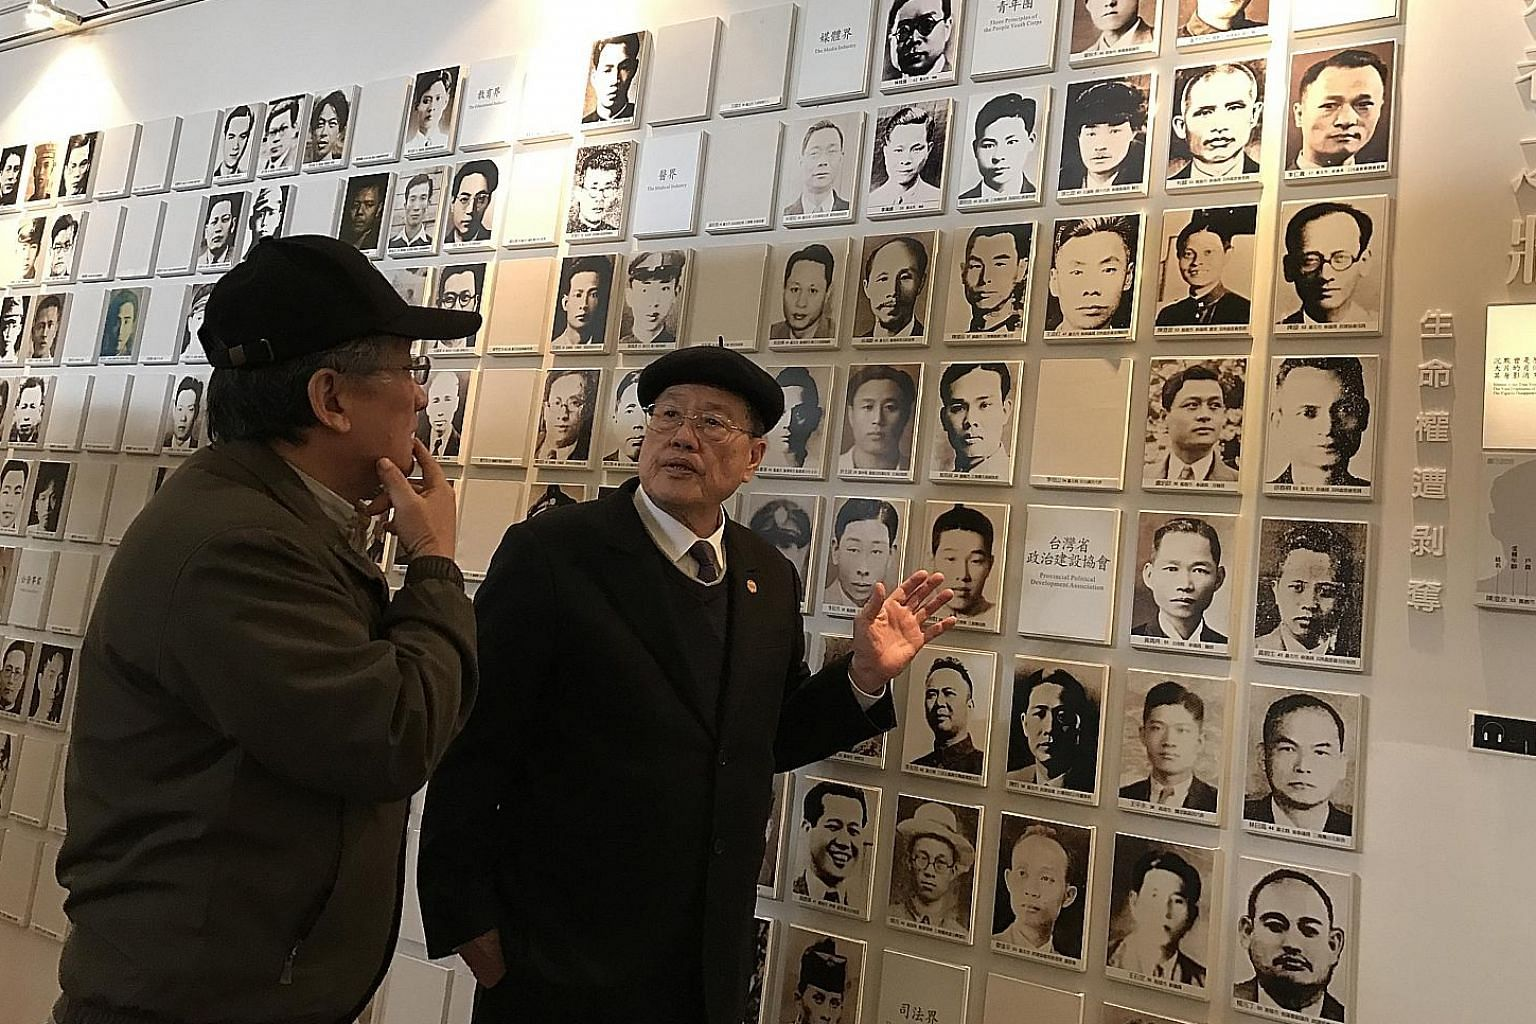 Chiang Kai-shek's status and deeds are being re-examined. Taiwan may rename the Chiang Kai-shek Memorial Hall and remove his statues. Mr Pan (in black suit) and Mr Yang recalling how their loved ones were victims of the Feb 28, 1947, crackdown under